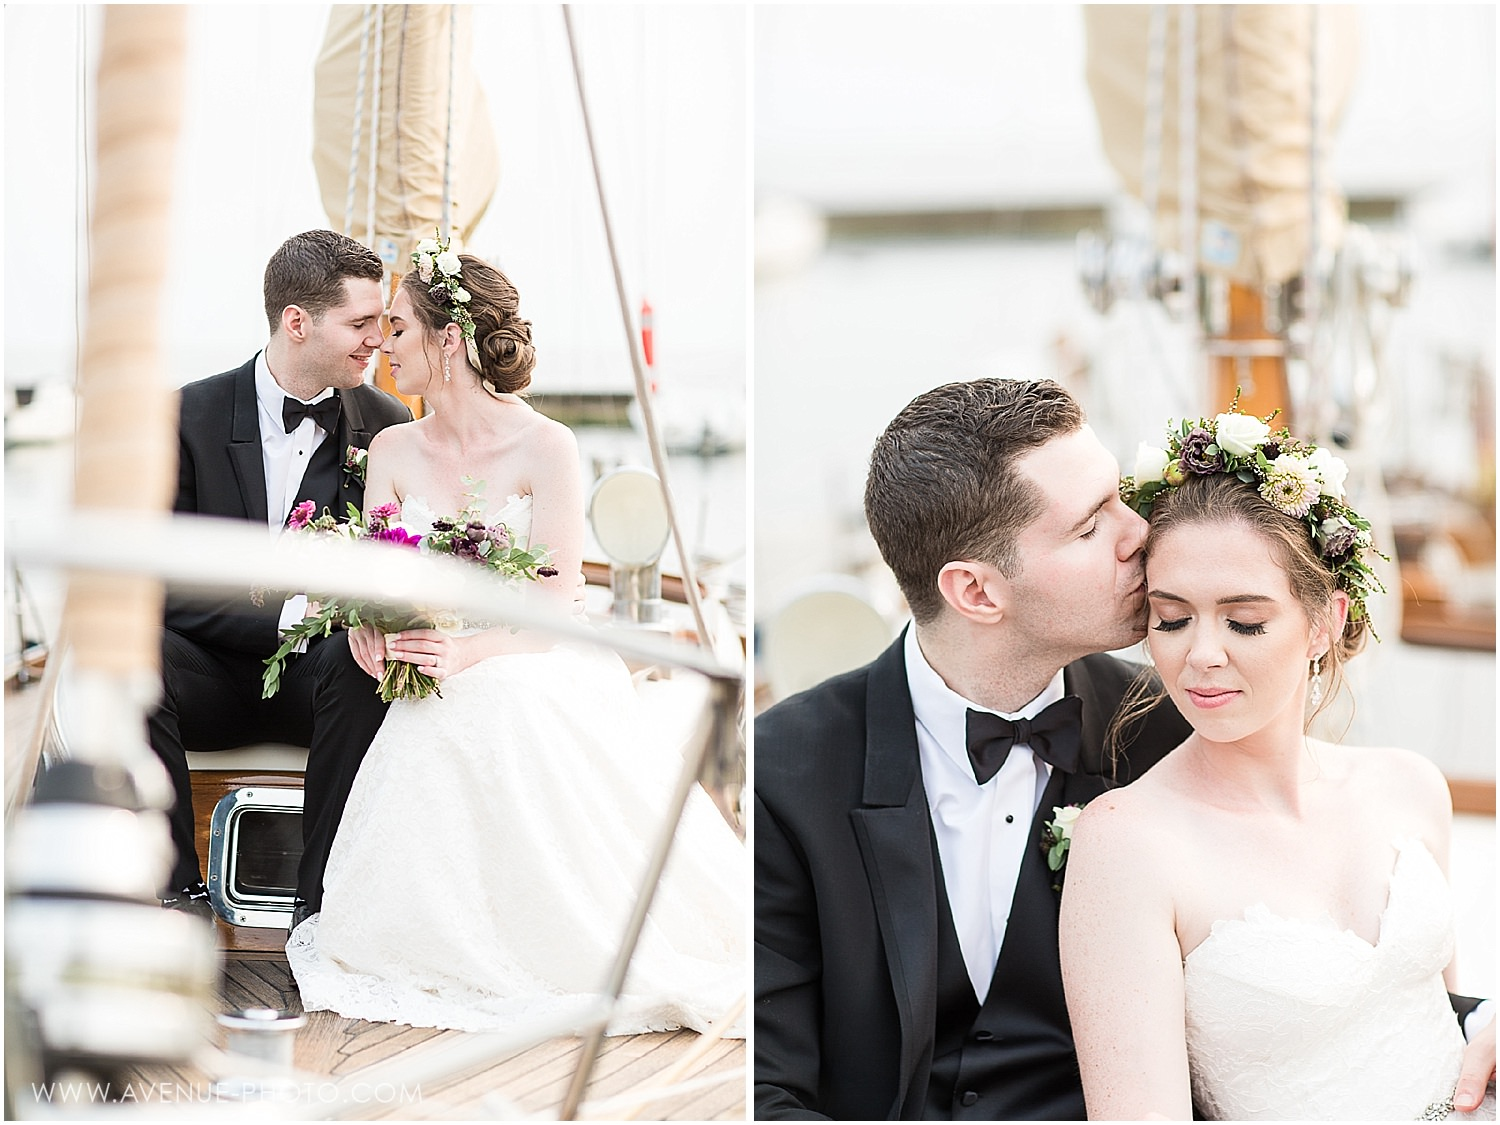 Boulevard Club Wedding, University of St Michael's College wedding, Avenue Photo, Yacht Club Wedding. Vintage sail boat wedding photos